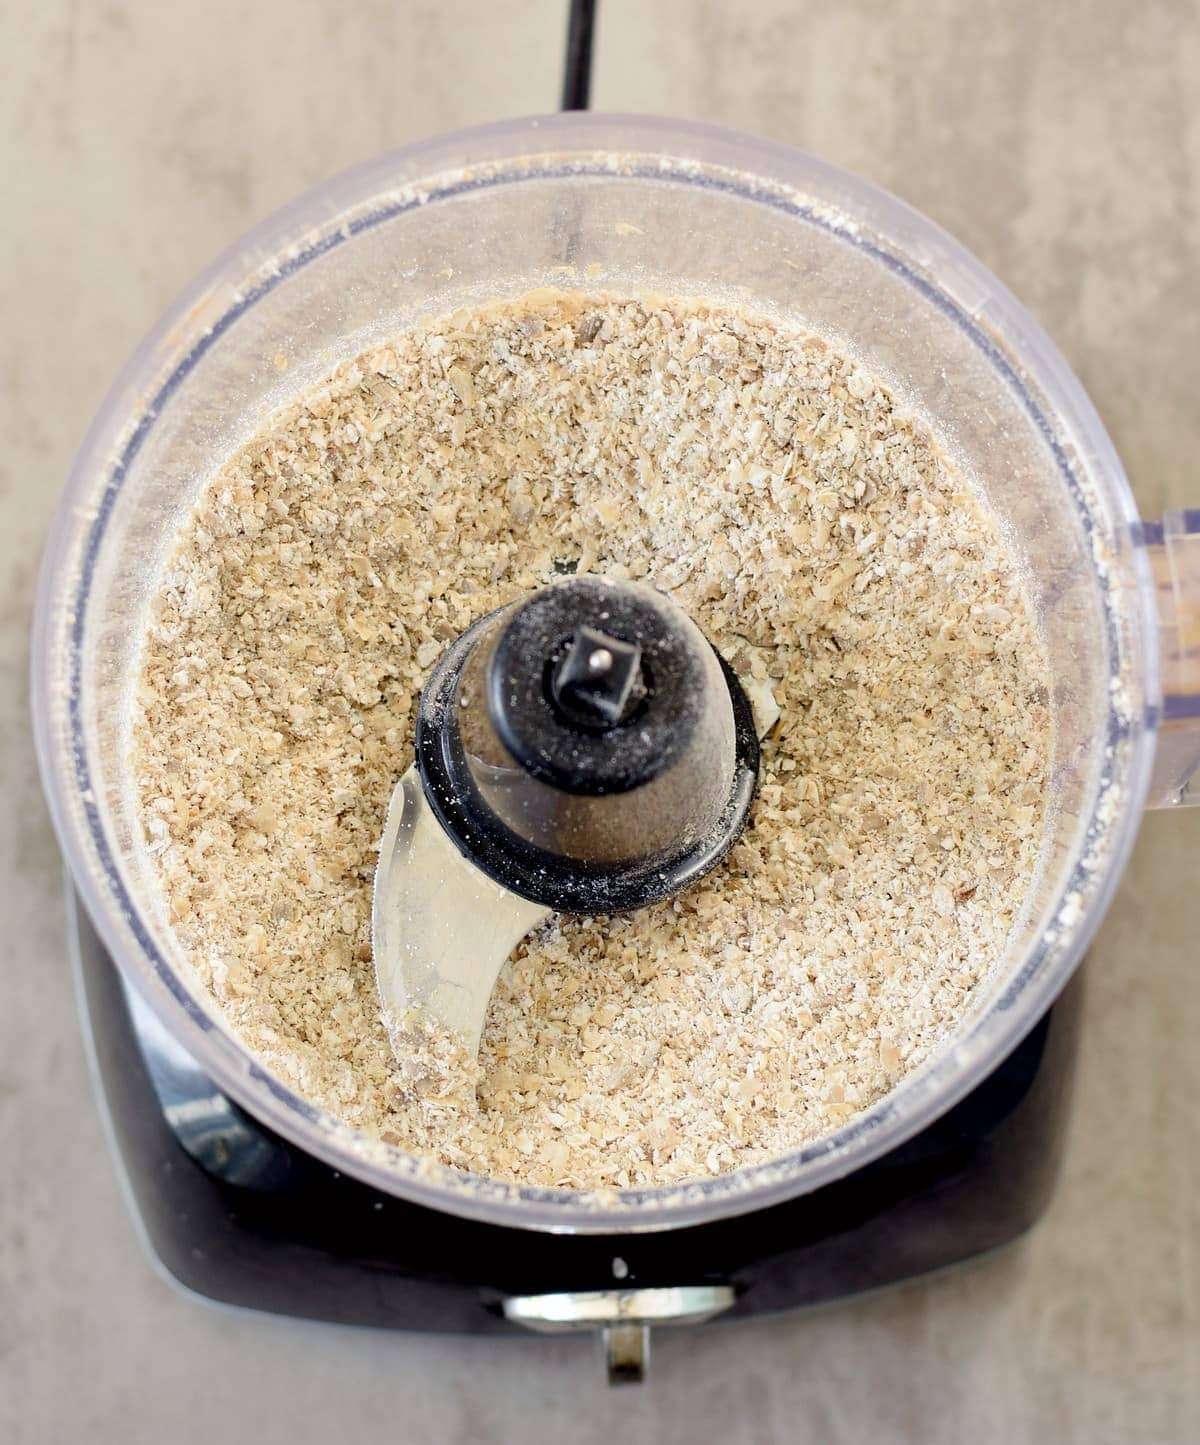 ground oats with sunflower seeds in a food processor